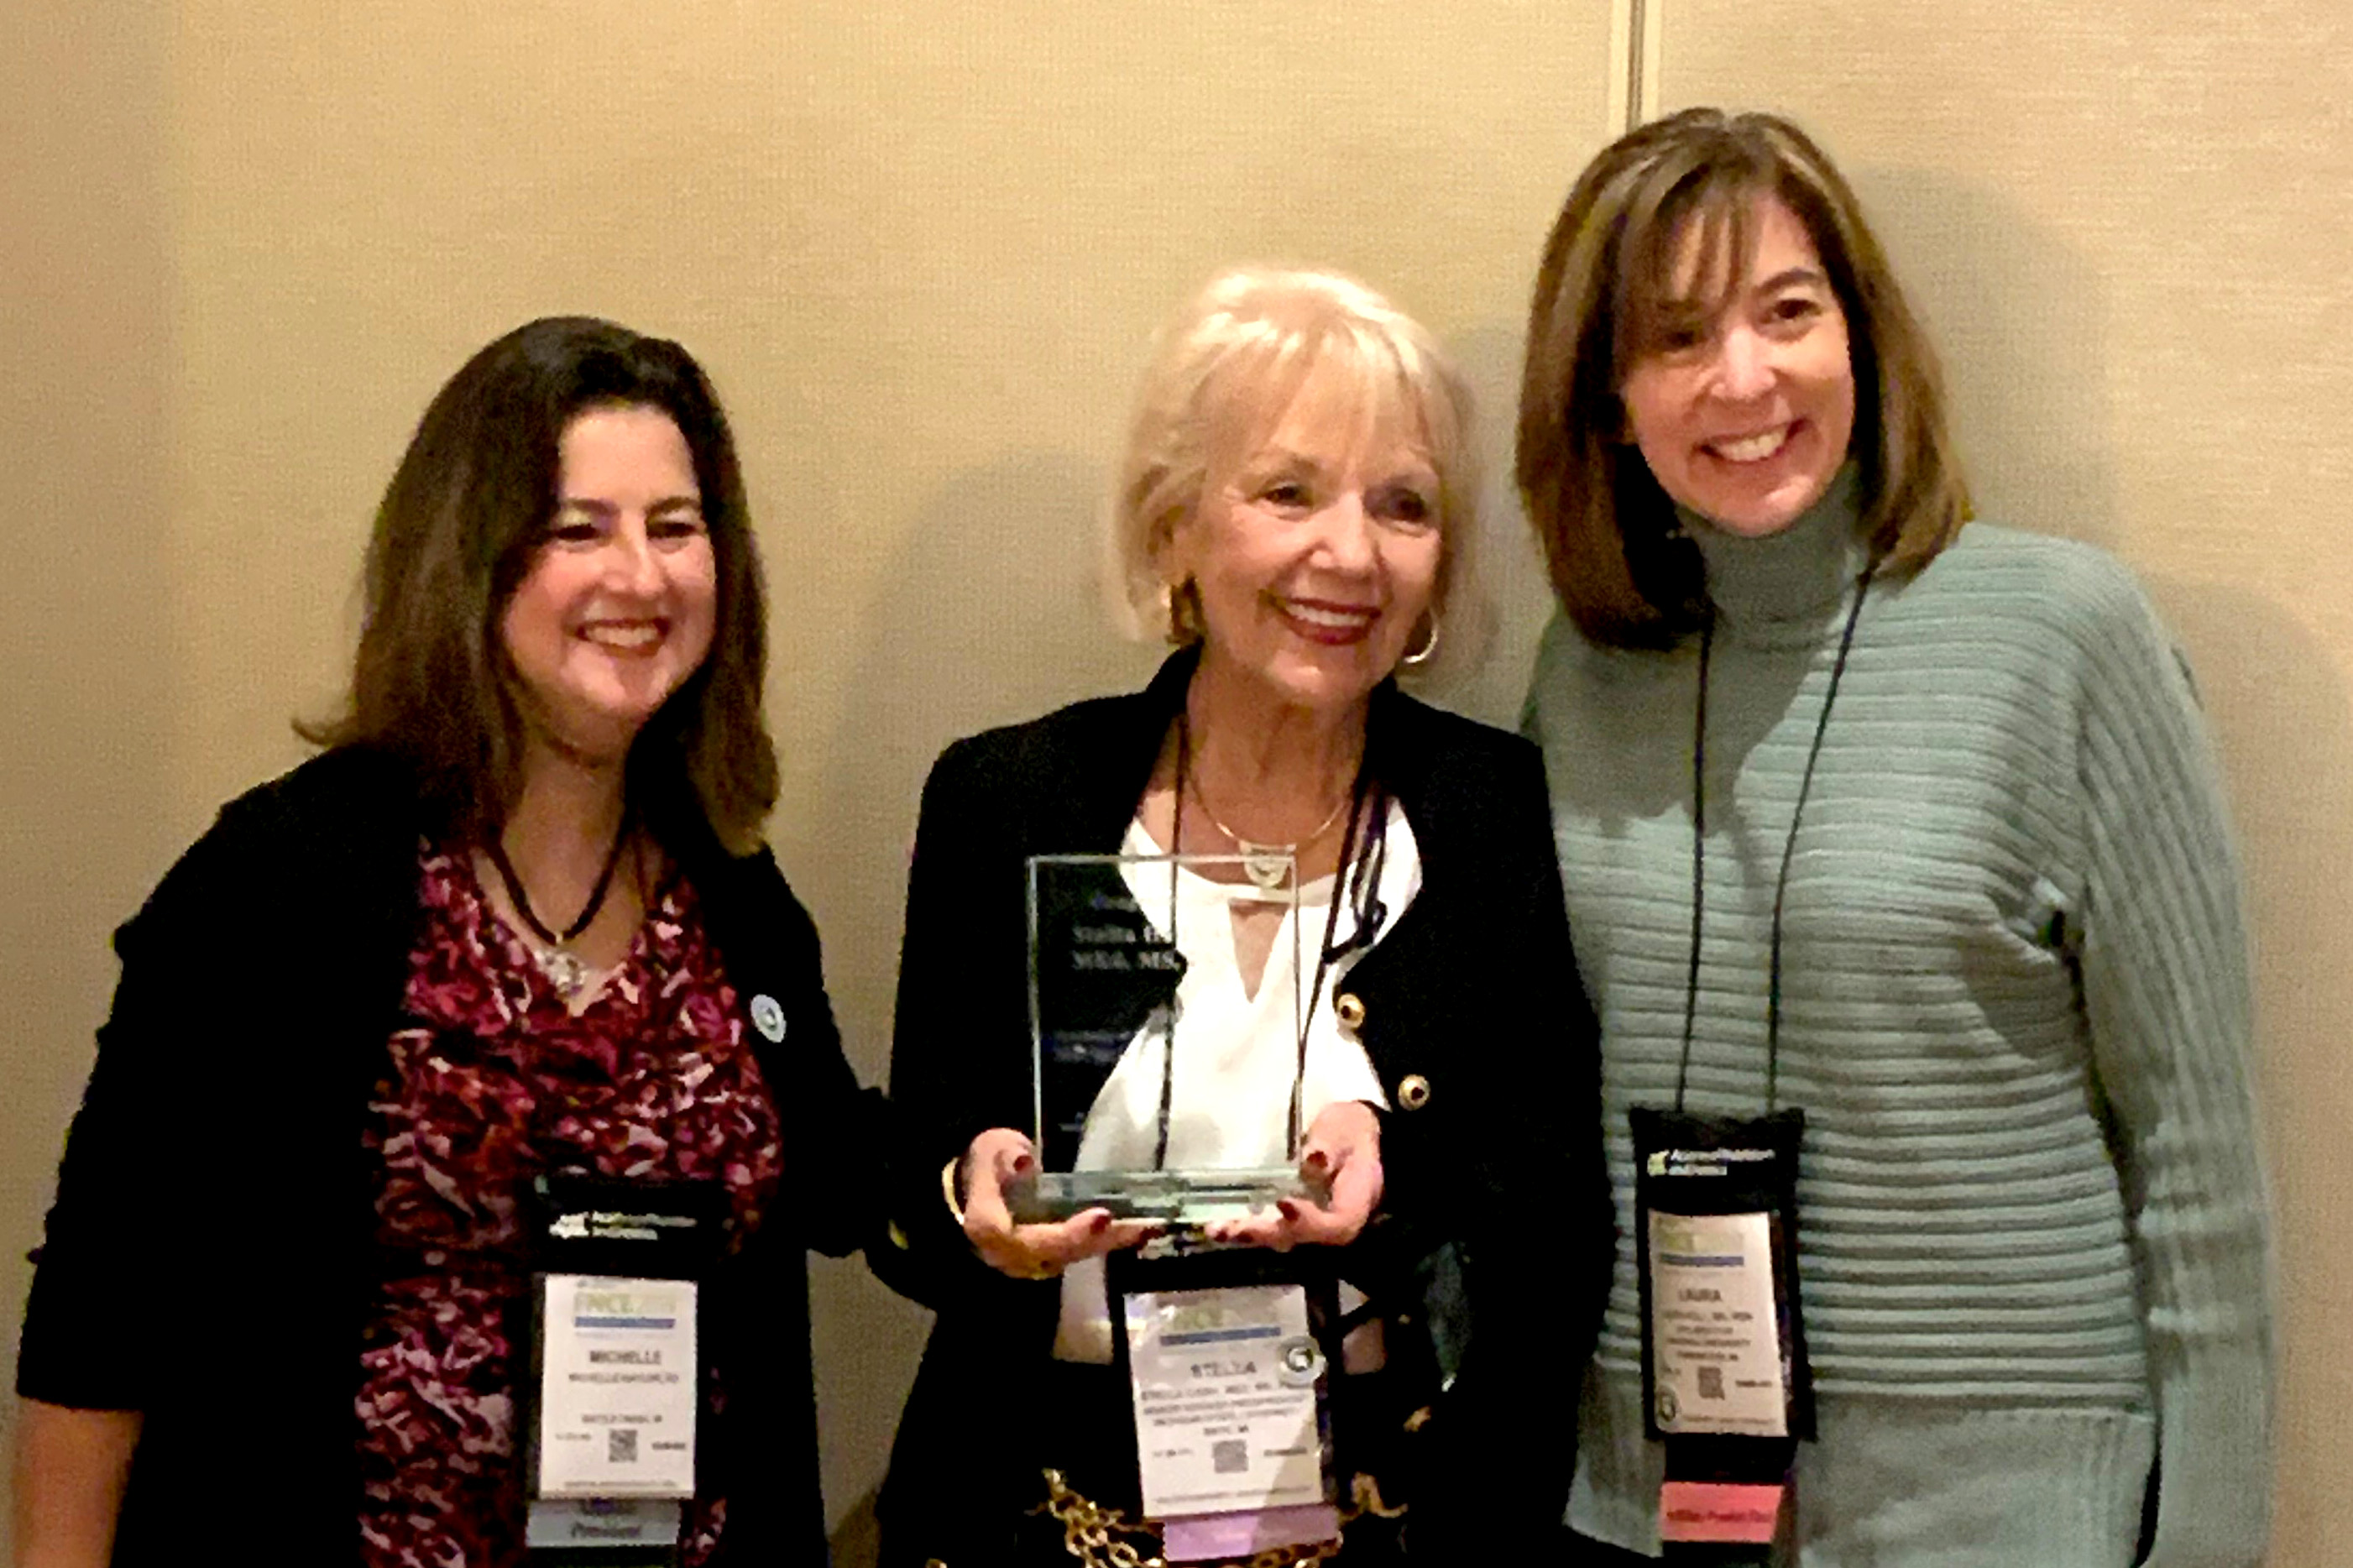 Stella H. Cash received the Academy of Nutrition and Dietetics 2019 Marjorie Hulsizer Copher Award